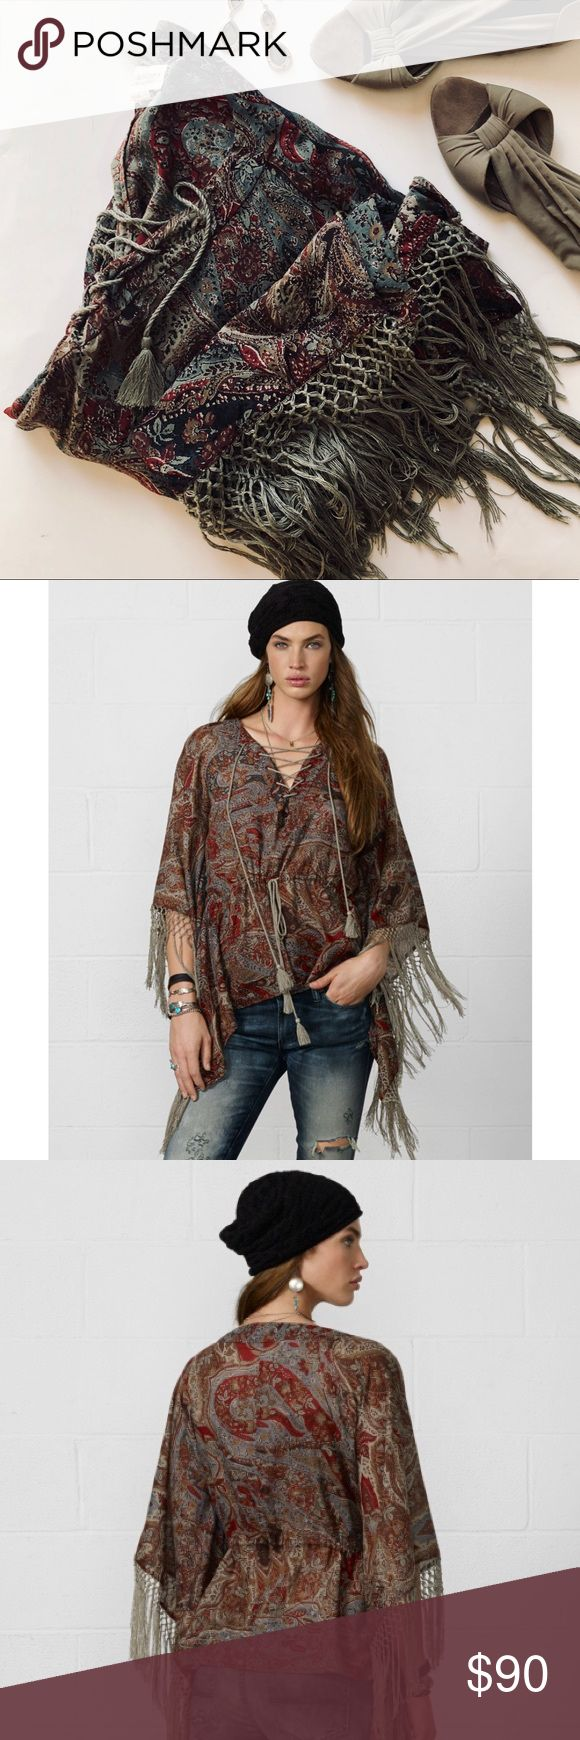 Ralph Lauren Denim & Supply Fringe Boho Poncho This top has always been my favorite!! Ralph Lauren Denim & Supply Poncho style with fringe detail top. Drawstring at waist area to tighten or loosen. Neutral greens, red, purple, & brown paisley prints. Size medium, but versatile to many sizes ( I am Normally a small and this fit me lovely). Excellent condition, no flaws. Sleeves are a batwing style. 100% cotton. Offers welcome:) Denim & Supply Ralph Lauren Tops Blouses